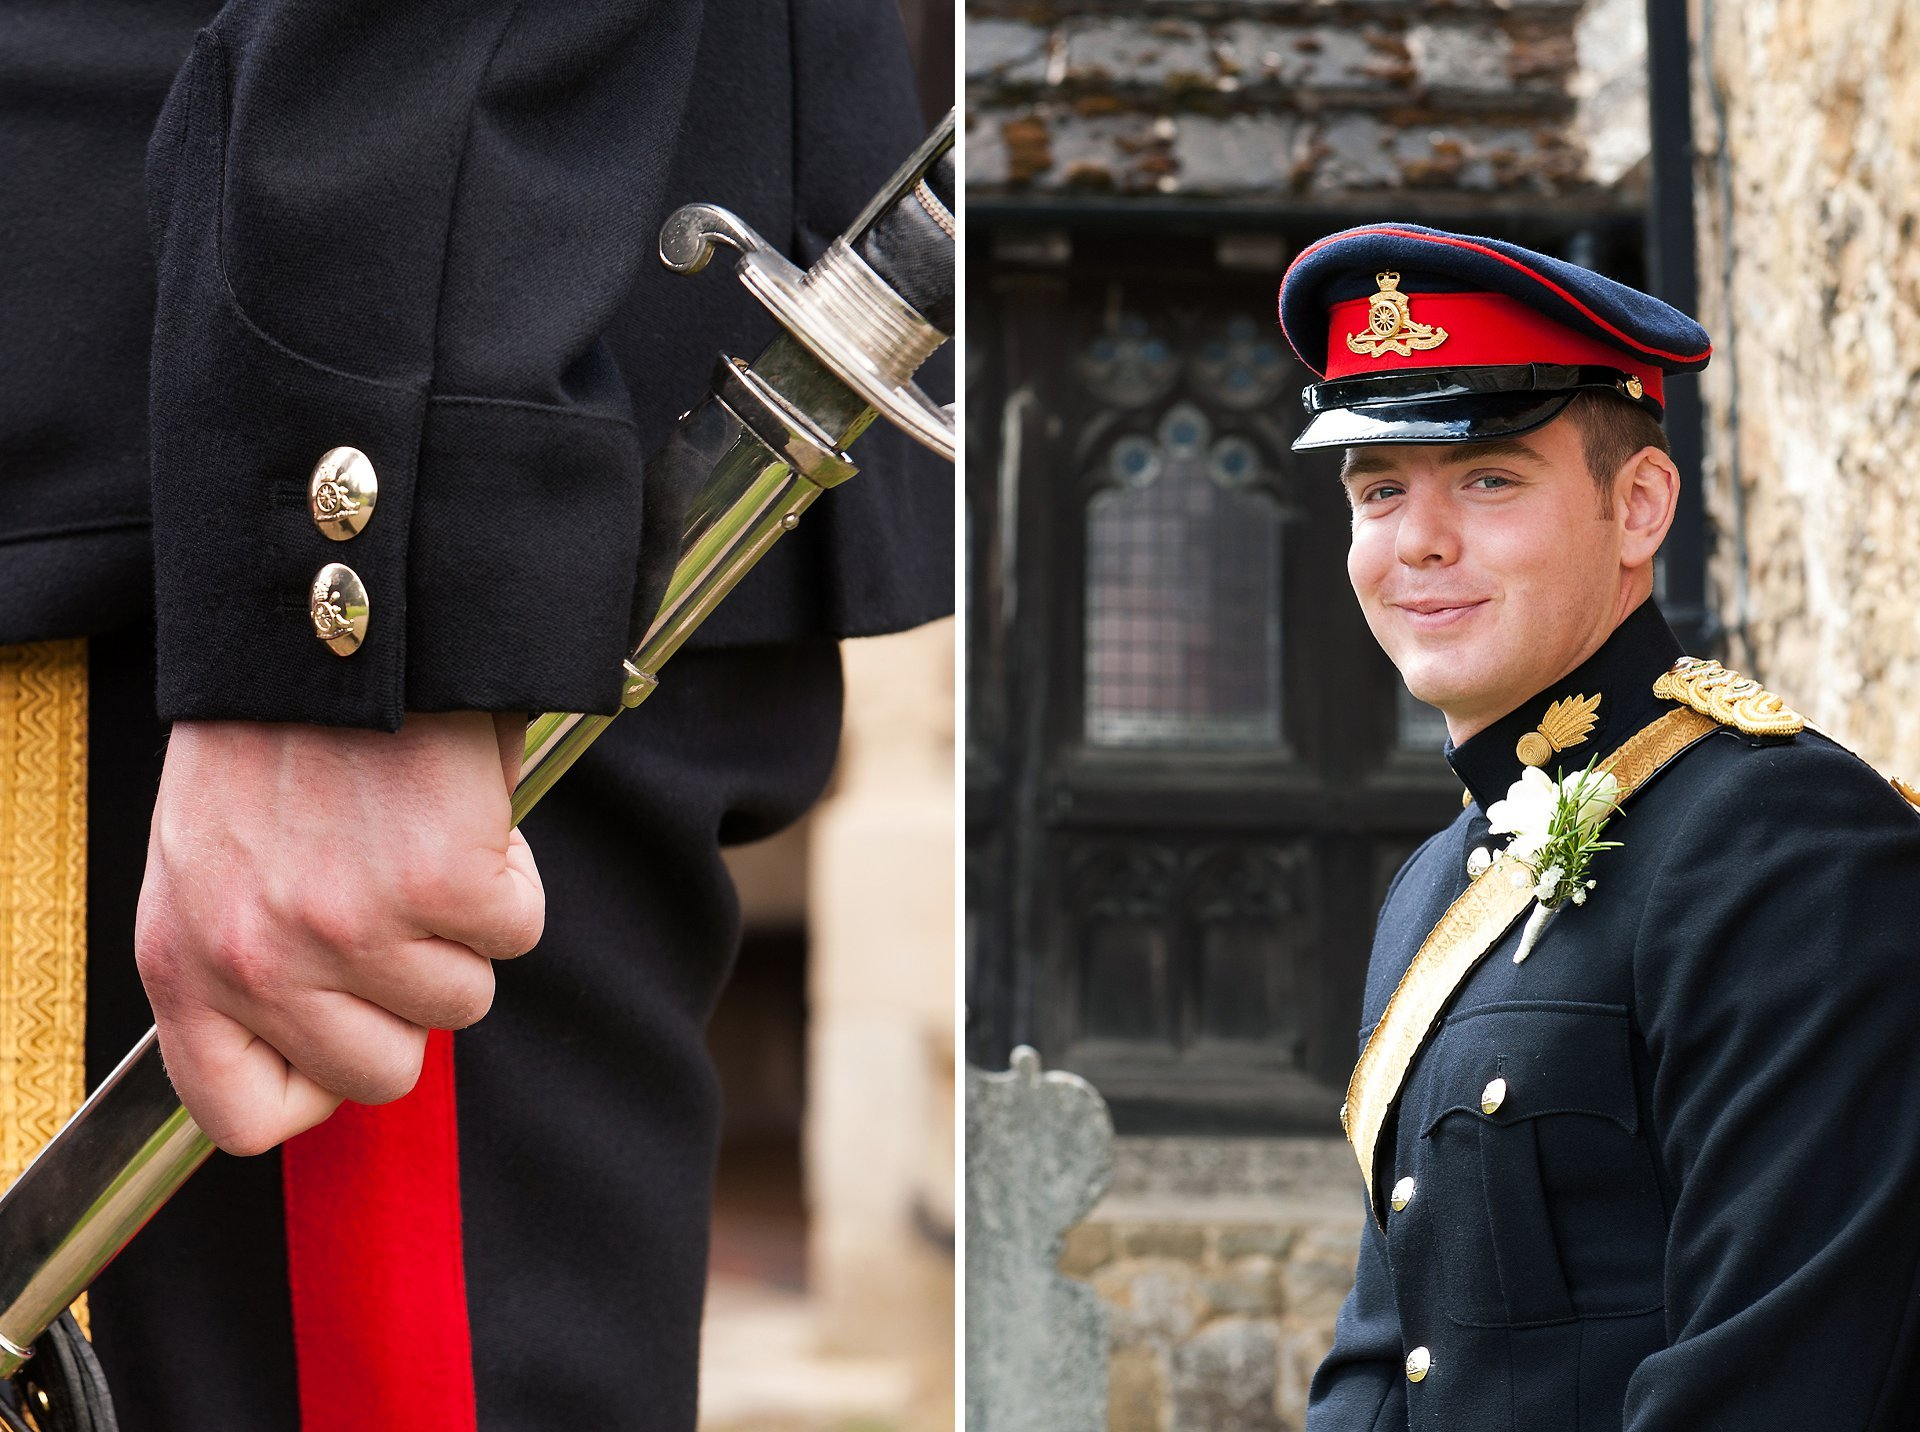 Groom, Sam, in his dress uniform at St Mary the Virgin church in Westerham, Kent